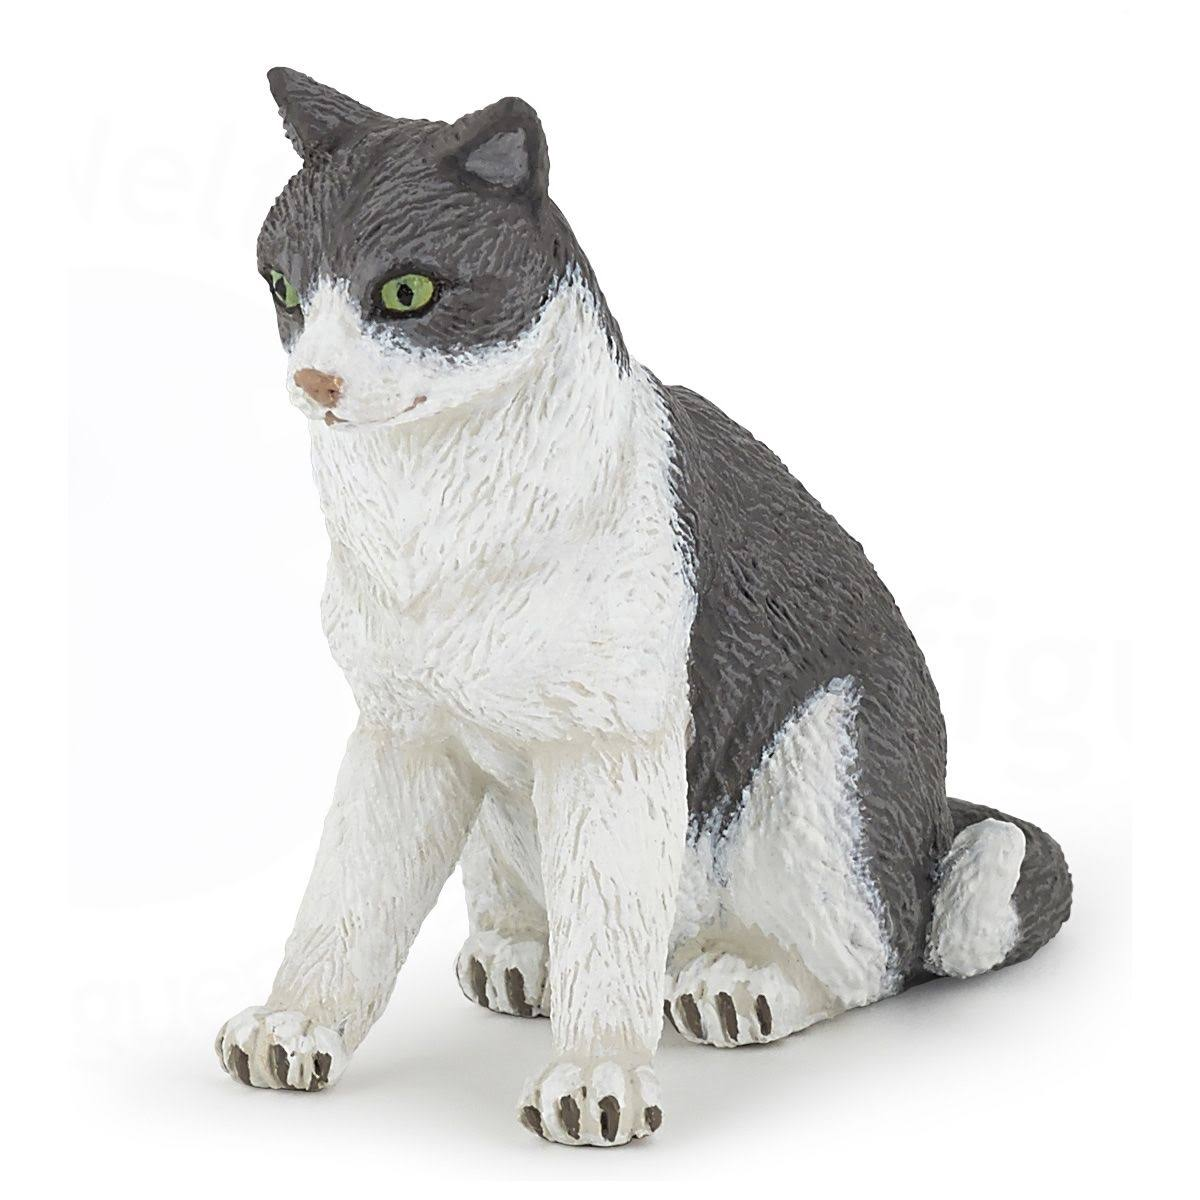 Papo 54033 Cat Sitting Down Figure - 2-3/8""